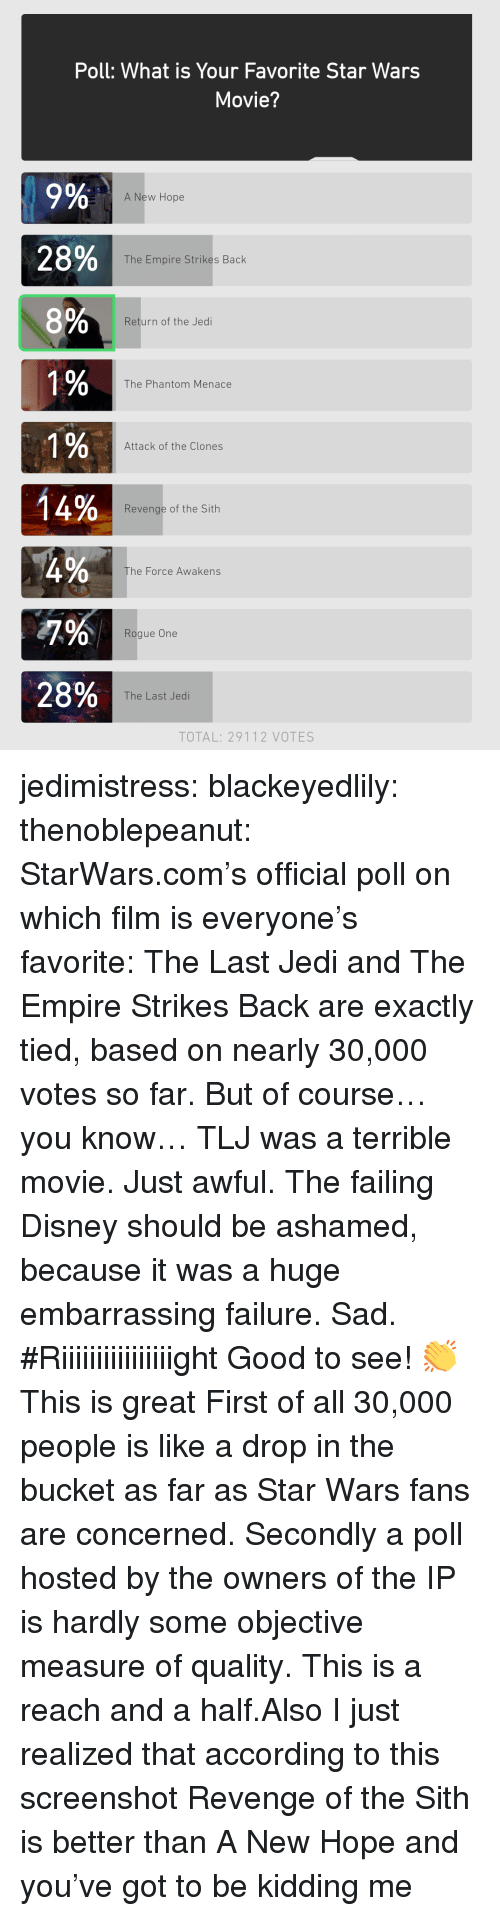 Disney, Empire, and Jedi: Poll: What is Your Favorite Star Wars  Movie?  9%  28%  8%  A New Hope  The Empire Strikes Back  Return of the Jedi  0  The Phantom Menace  0  0  Attack of the Clones  0  14%  Revenge of the Sith  he Force Awakens  Rogue One  28%  The Last Jedi  TOTAL: 29112 VOTES jedimistress: blackeyedlily:  thenoblepeanut:   StarWars.com's official poll on which film is everyone's favorite: The Last Jedi and The Empire Strikes Back are exactly tied, based on nearly 30,000 votes so far. But of course… you know… TLJ was a terrible movie. Just awful. The failing Disney should be ashamed, because it was a huge embarrassing failure. Sad.  #Riiiiiiiiiiiiiiiight   Good to see! 👏  This is great  First of all 30,000 people is like a drop in the bucket as far as Star Wars fans are concerned. Secondly a poll hosted by the owners of the IP is hardly some objective measure of quality. This is a reach and a half.Also I just realized that according to this screenshot Revenge of the Sith is better than A New Hope and you've got to be kidding me